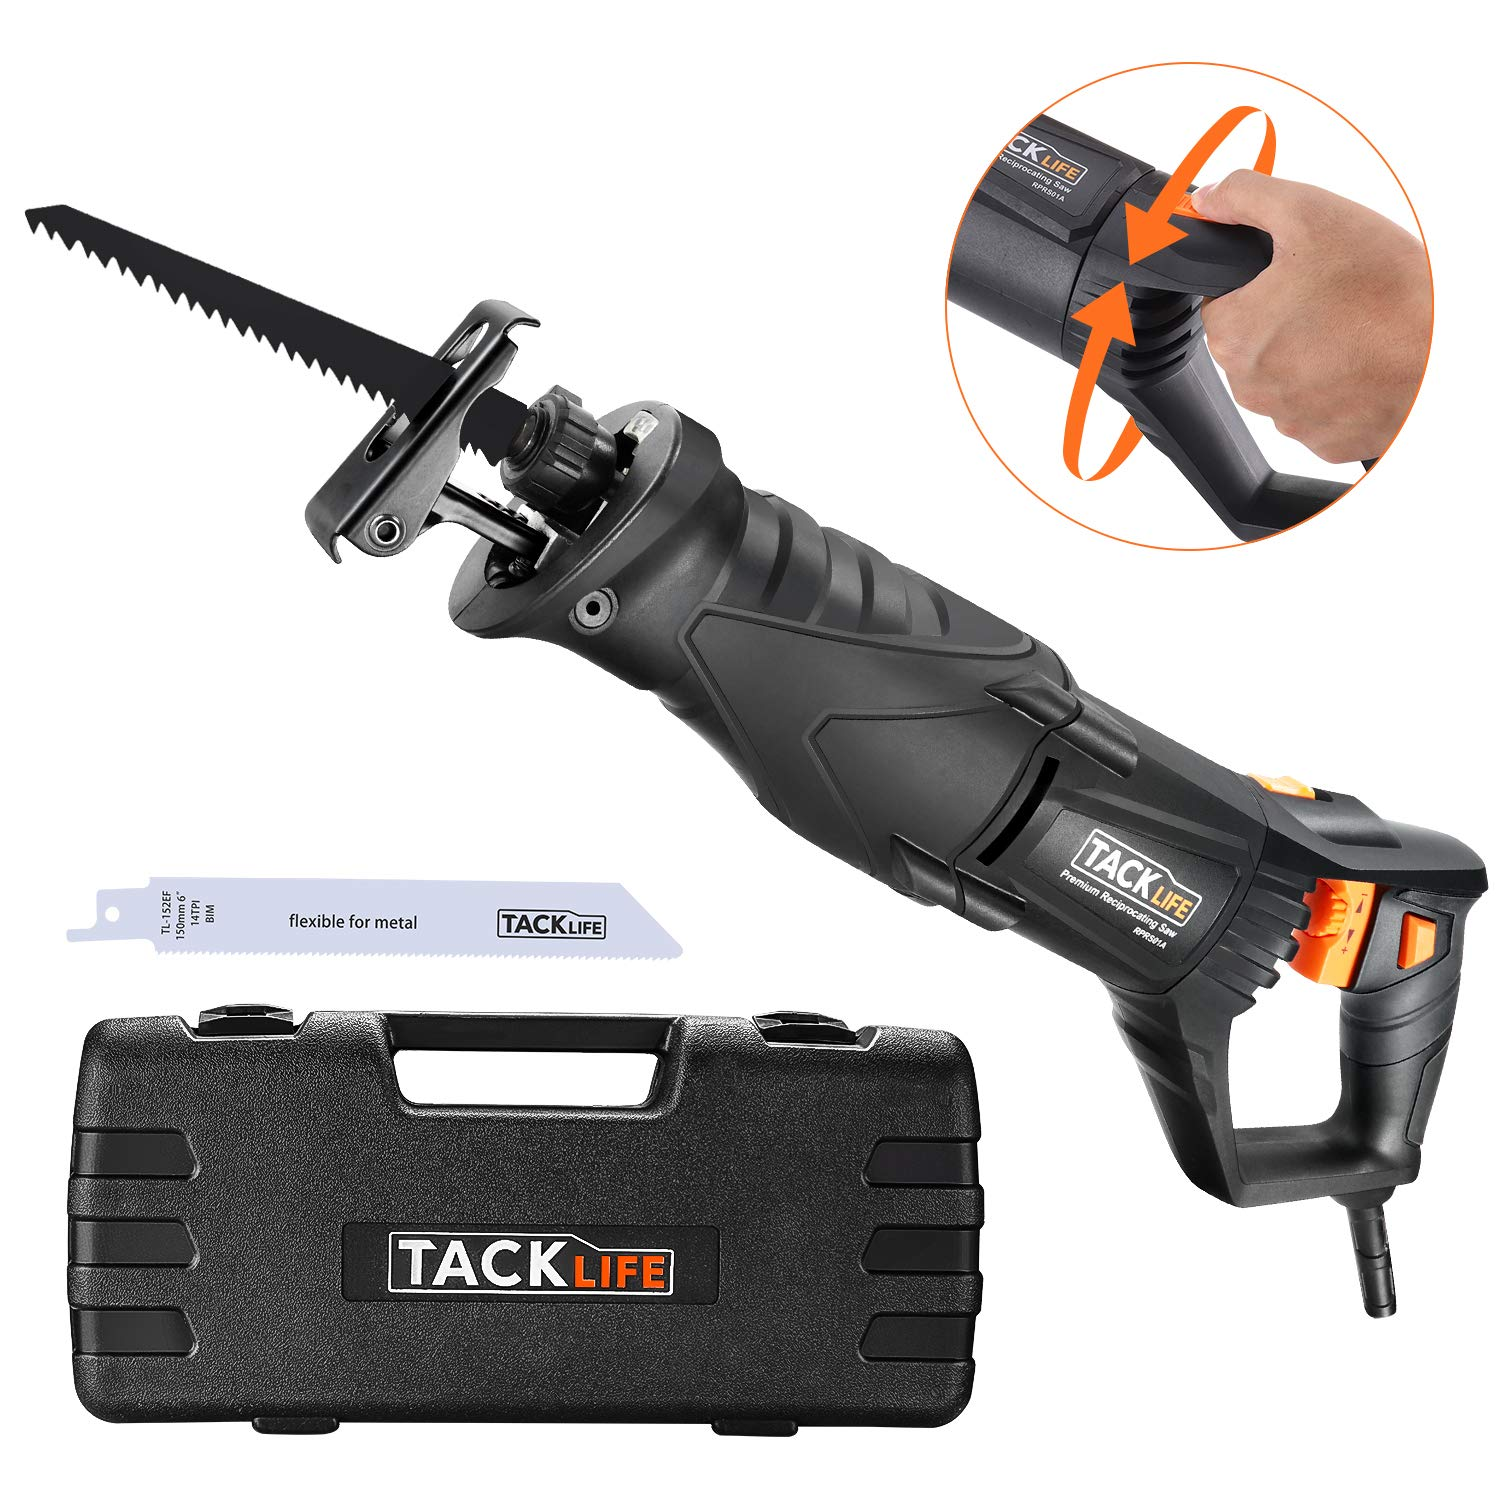 TACKLIFE Reciprocating Saw, 850W, 2800SPM, Rotary Handle(90° Left & Right)